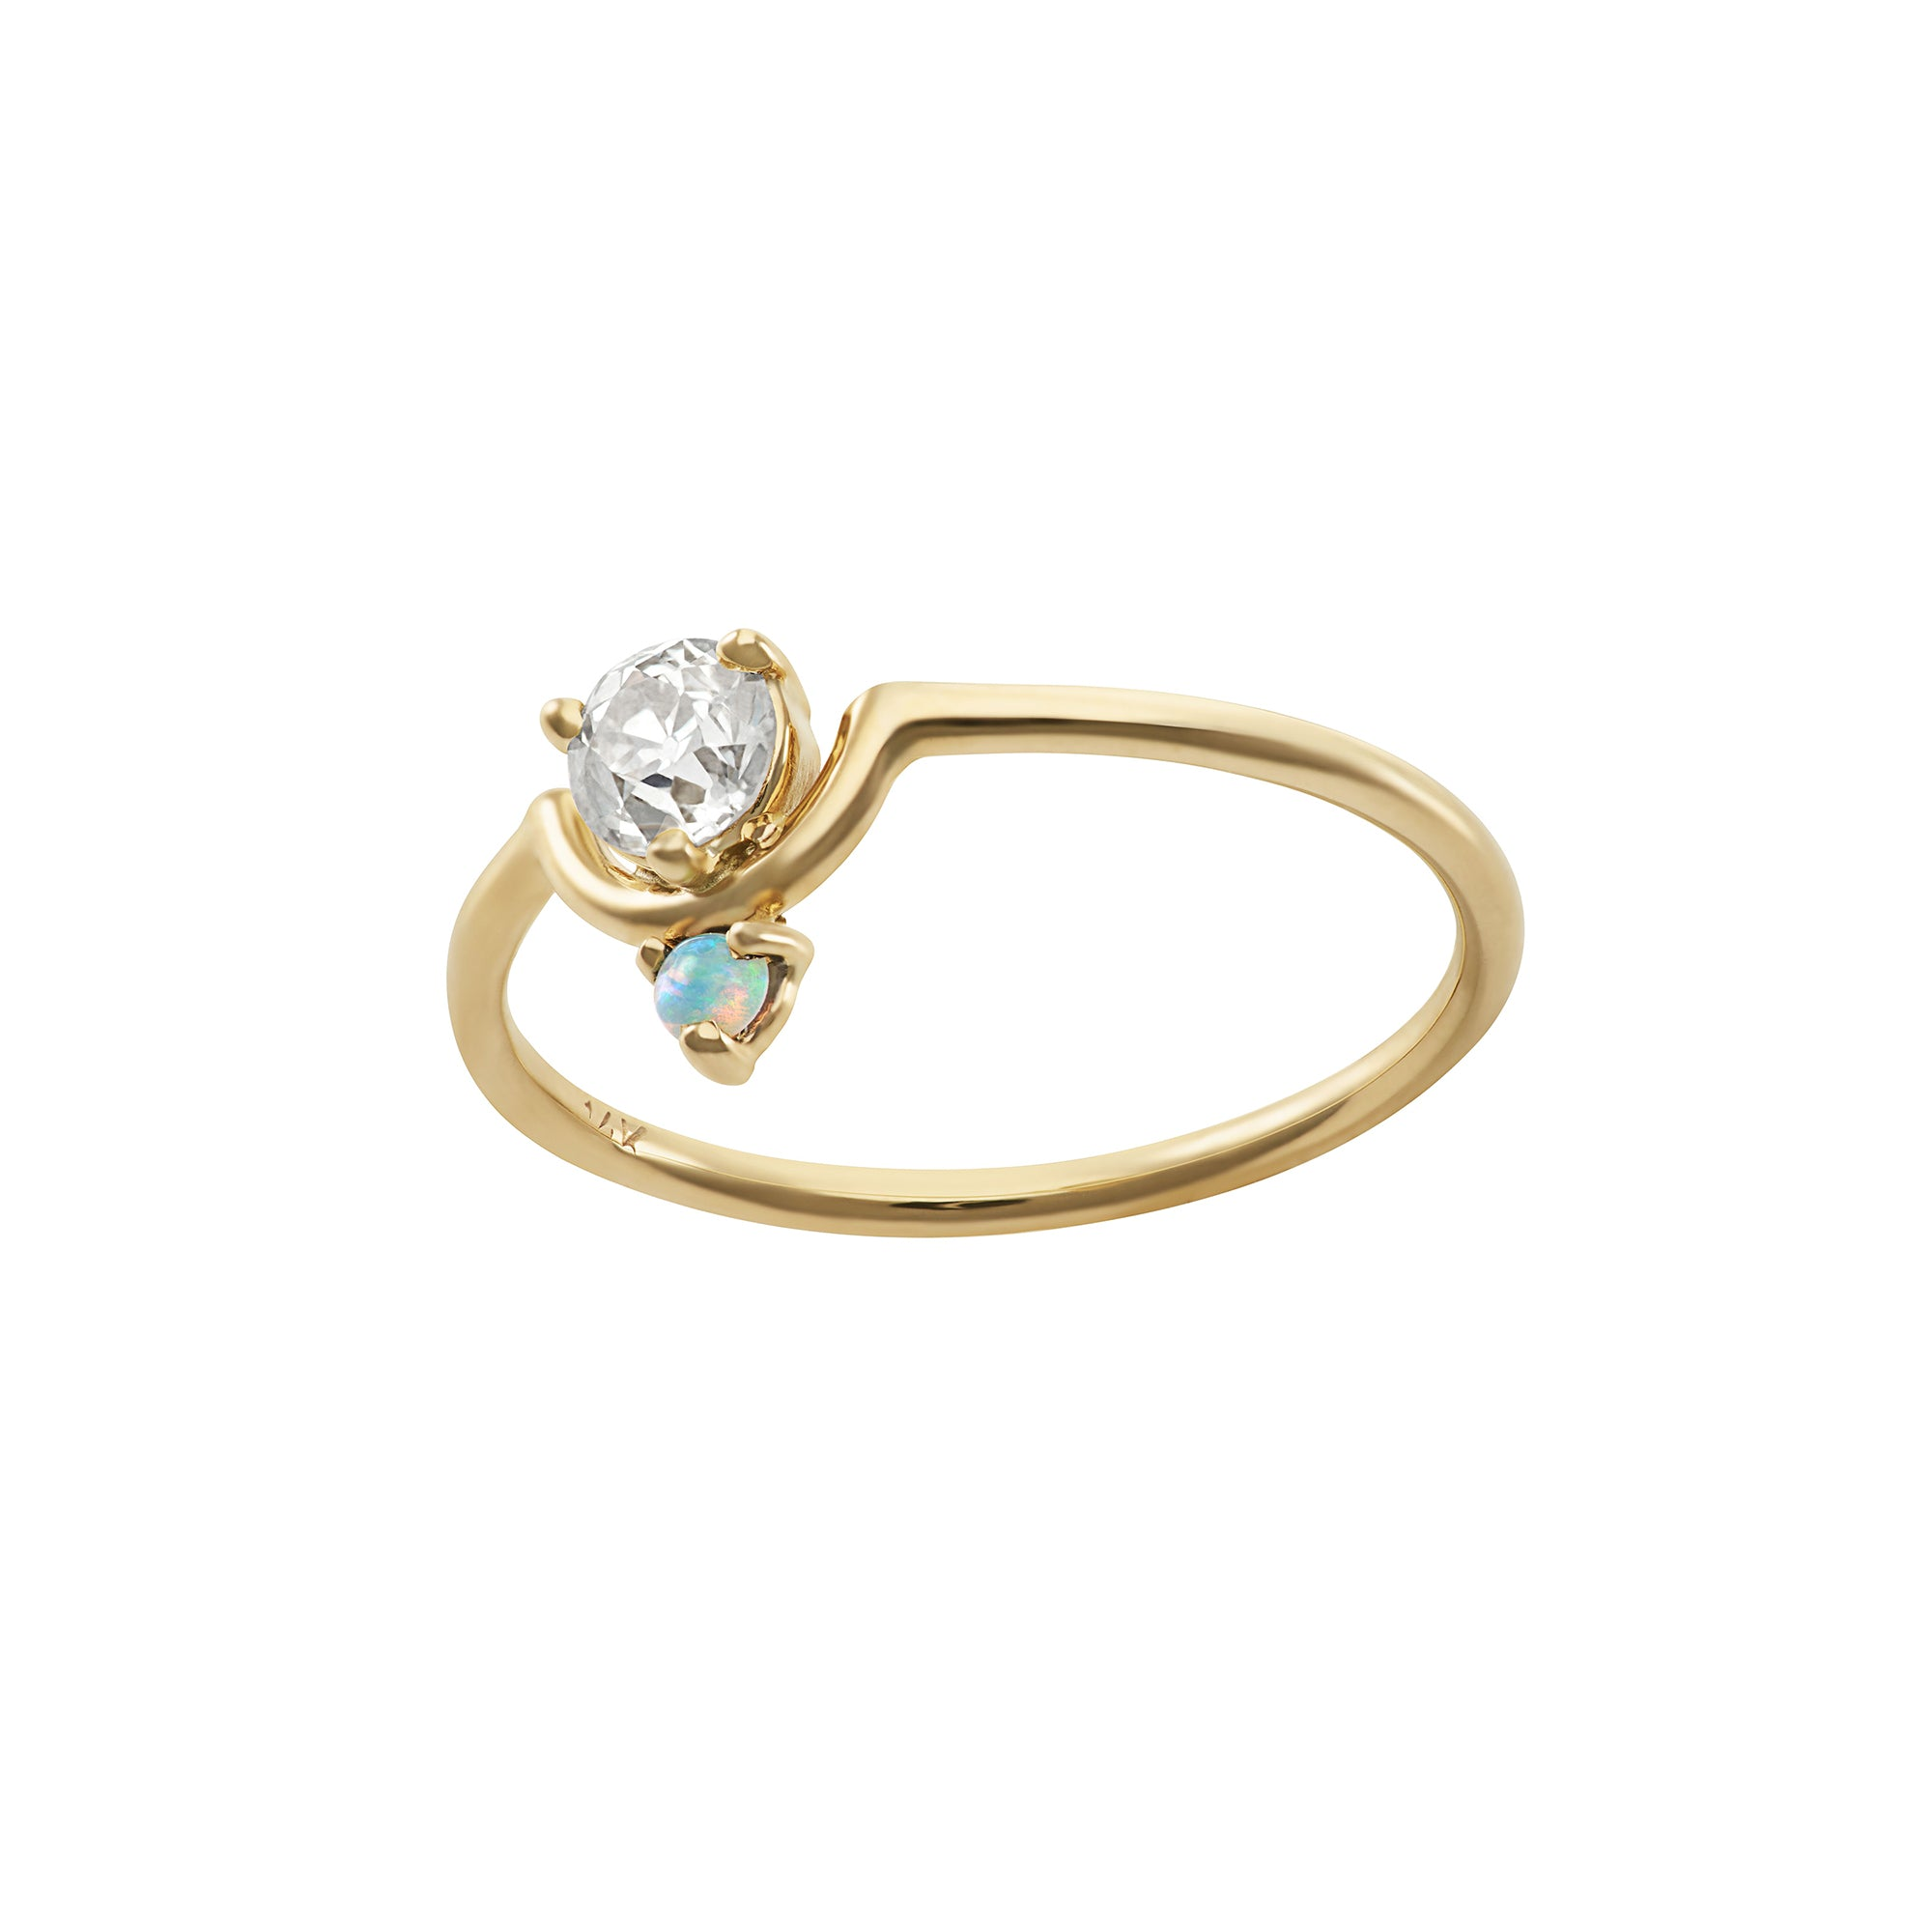 Nestled Diamond & Opal Ring - Wwake - Rings | Broken English Jewelry